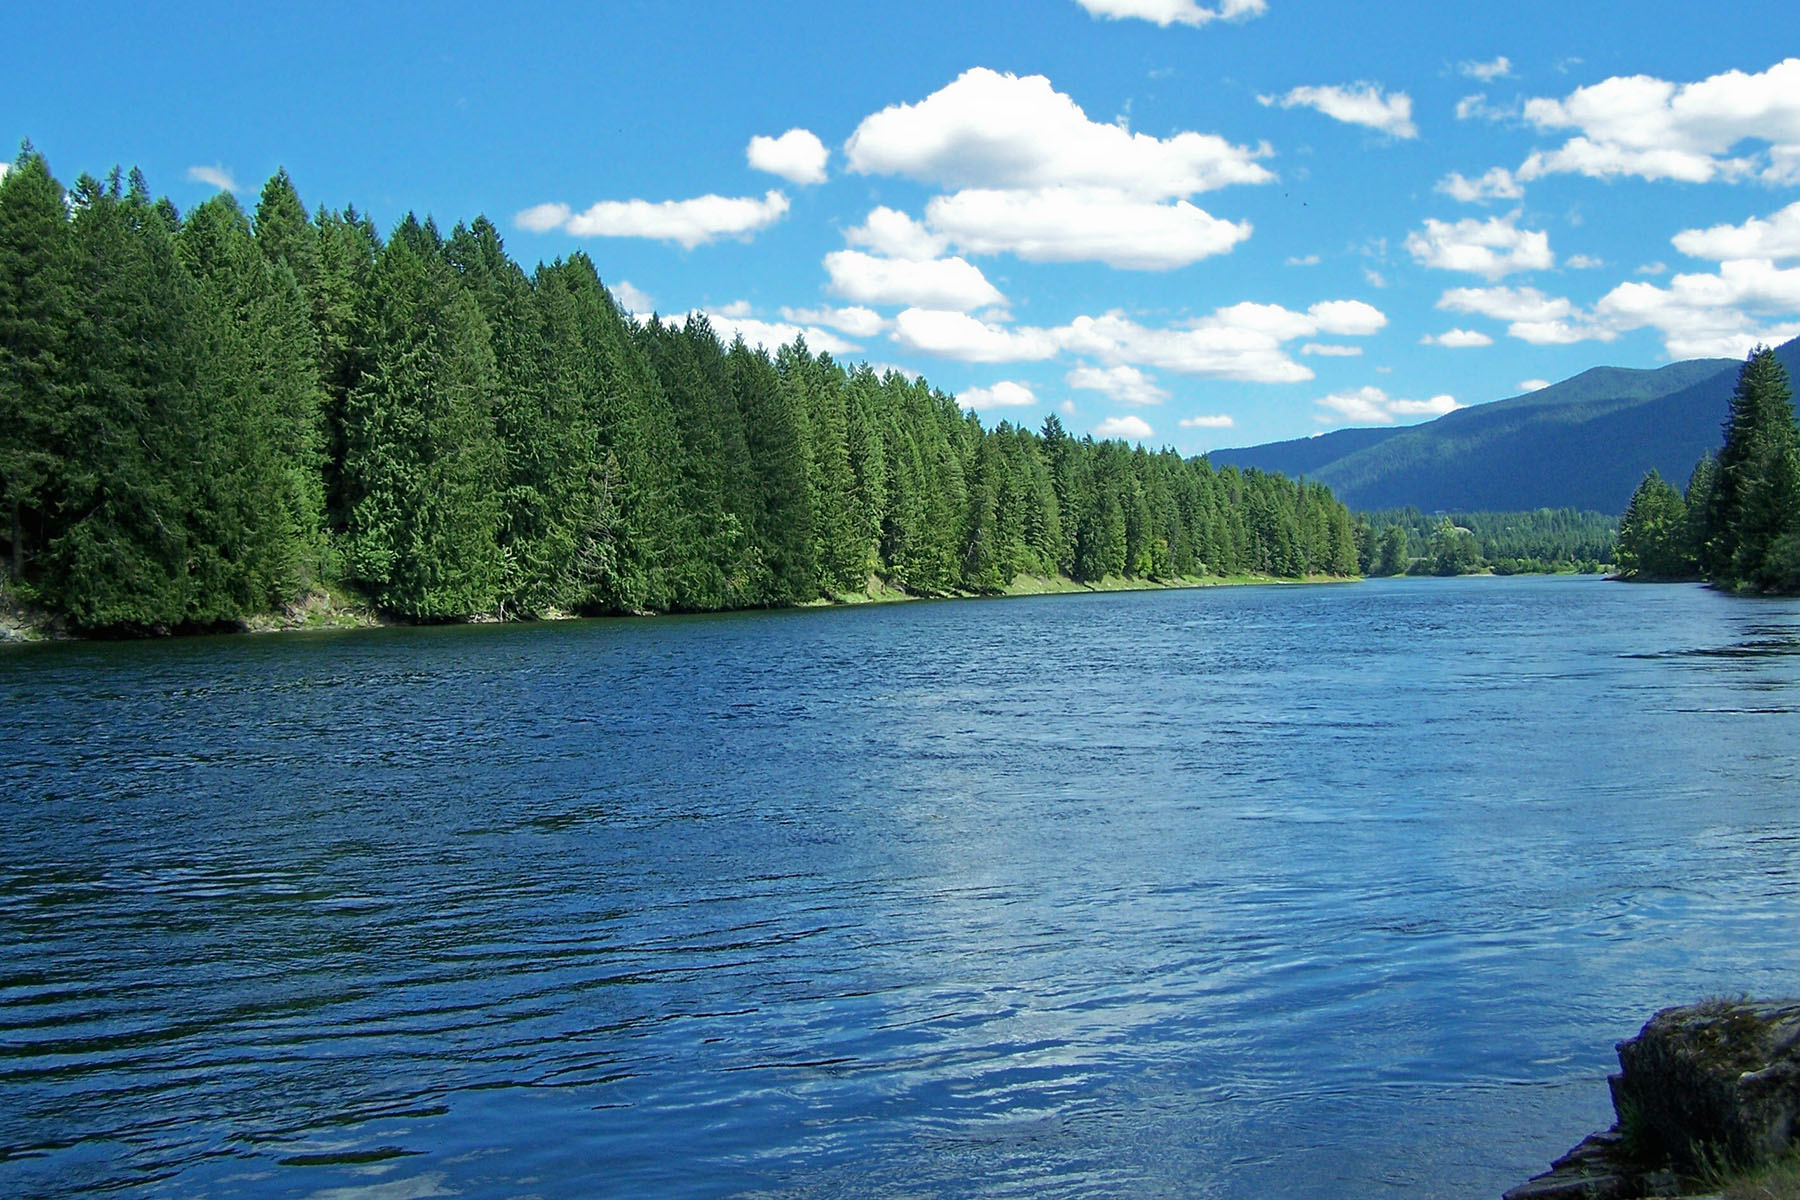 Land for Sale at River Front Ranch Land 59150 HWY 200 Clark Fork, Idaho, 83811 United States